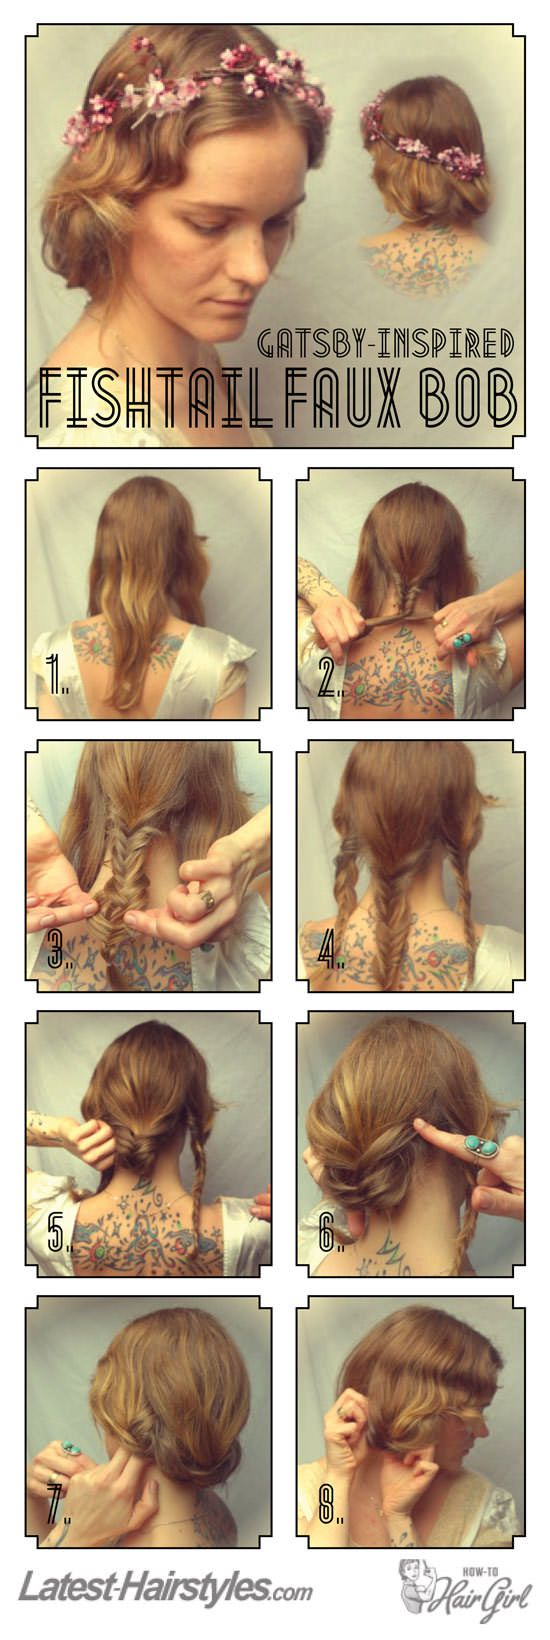 The minute I master fishtailing, I am trying this! I love how it looks. I'm perpetually on the hunt for ways to style my long hair to look short.